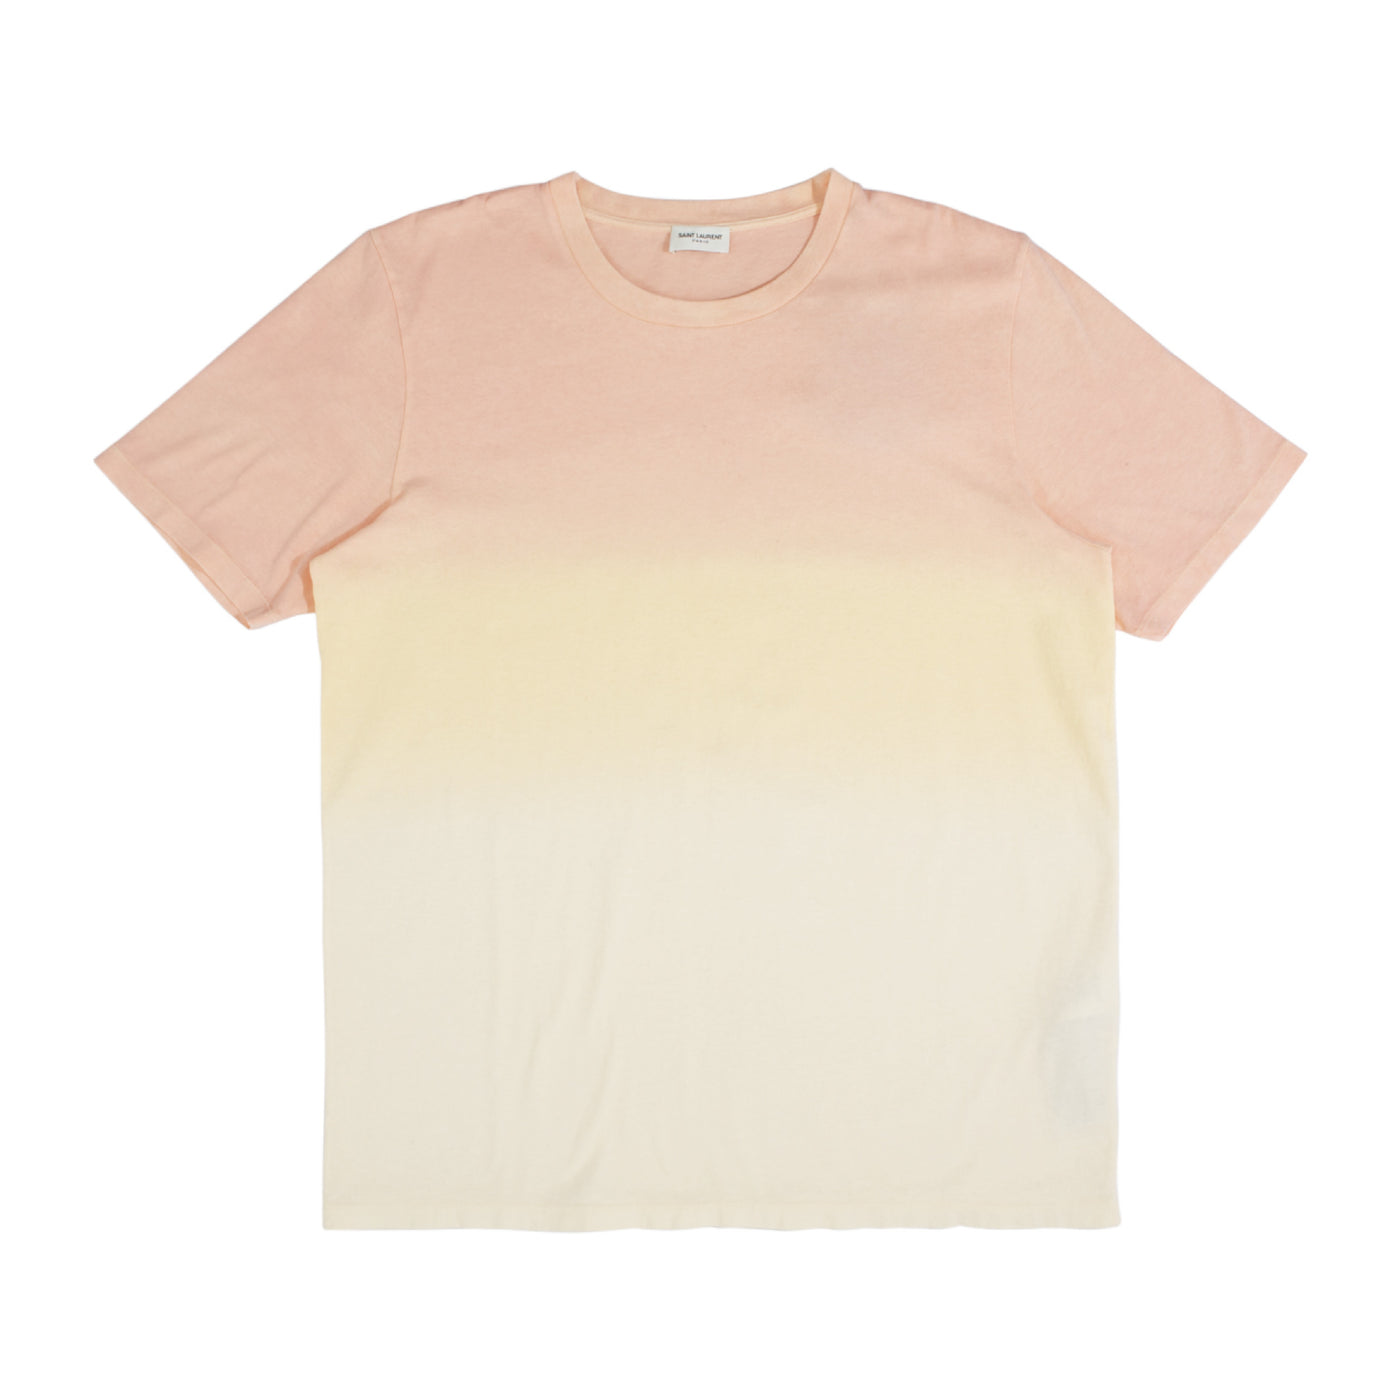 Load image into Gallery viewer, SAINT LAURENT DIP DYE T-SHIRT ORANGE